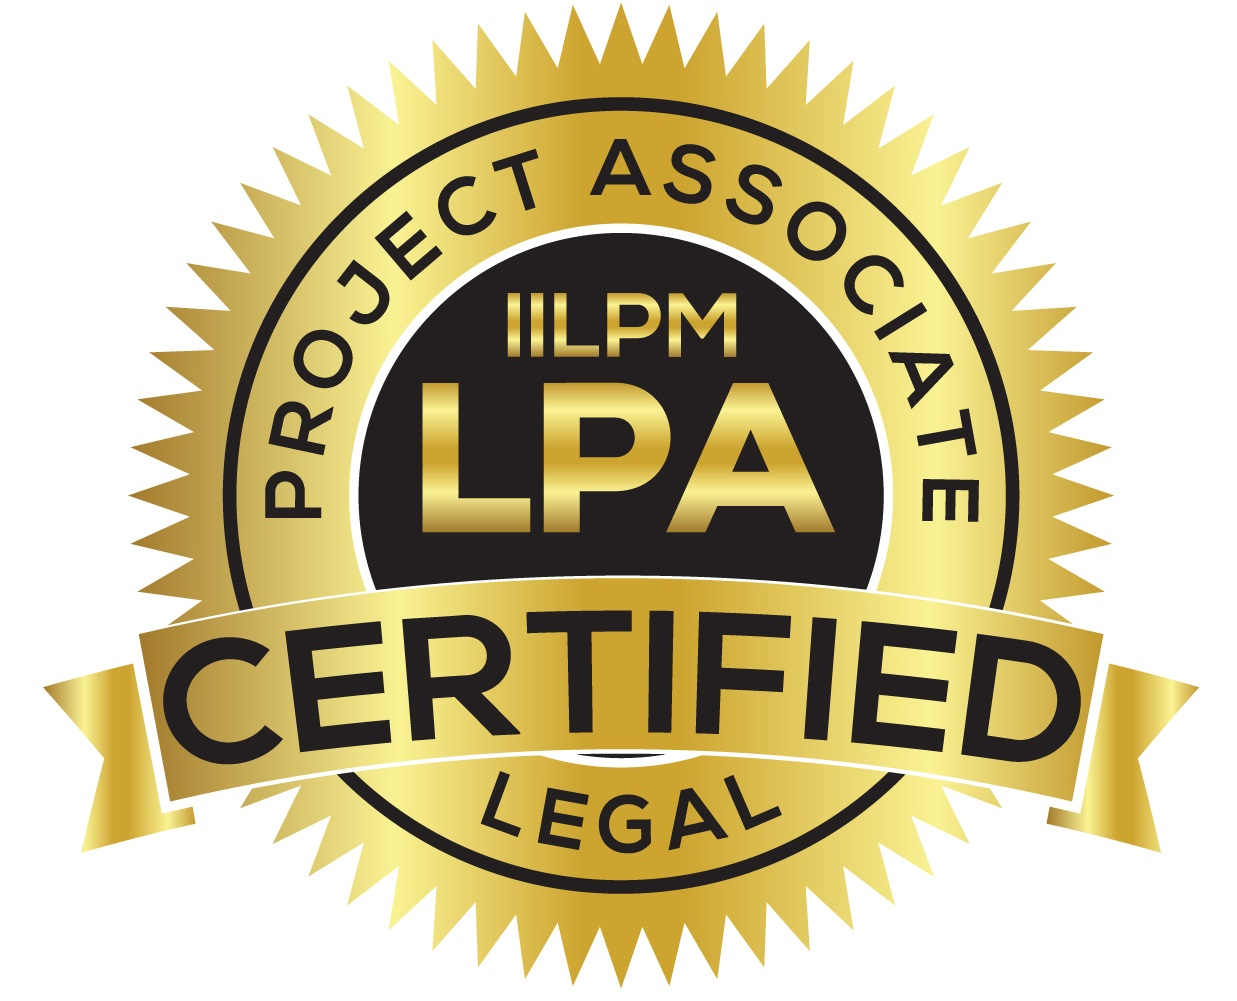 Legal Project Management Certification Legal Project Management Uk